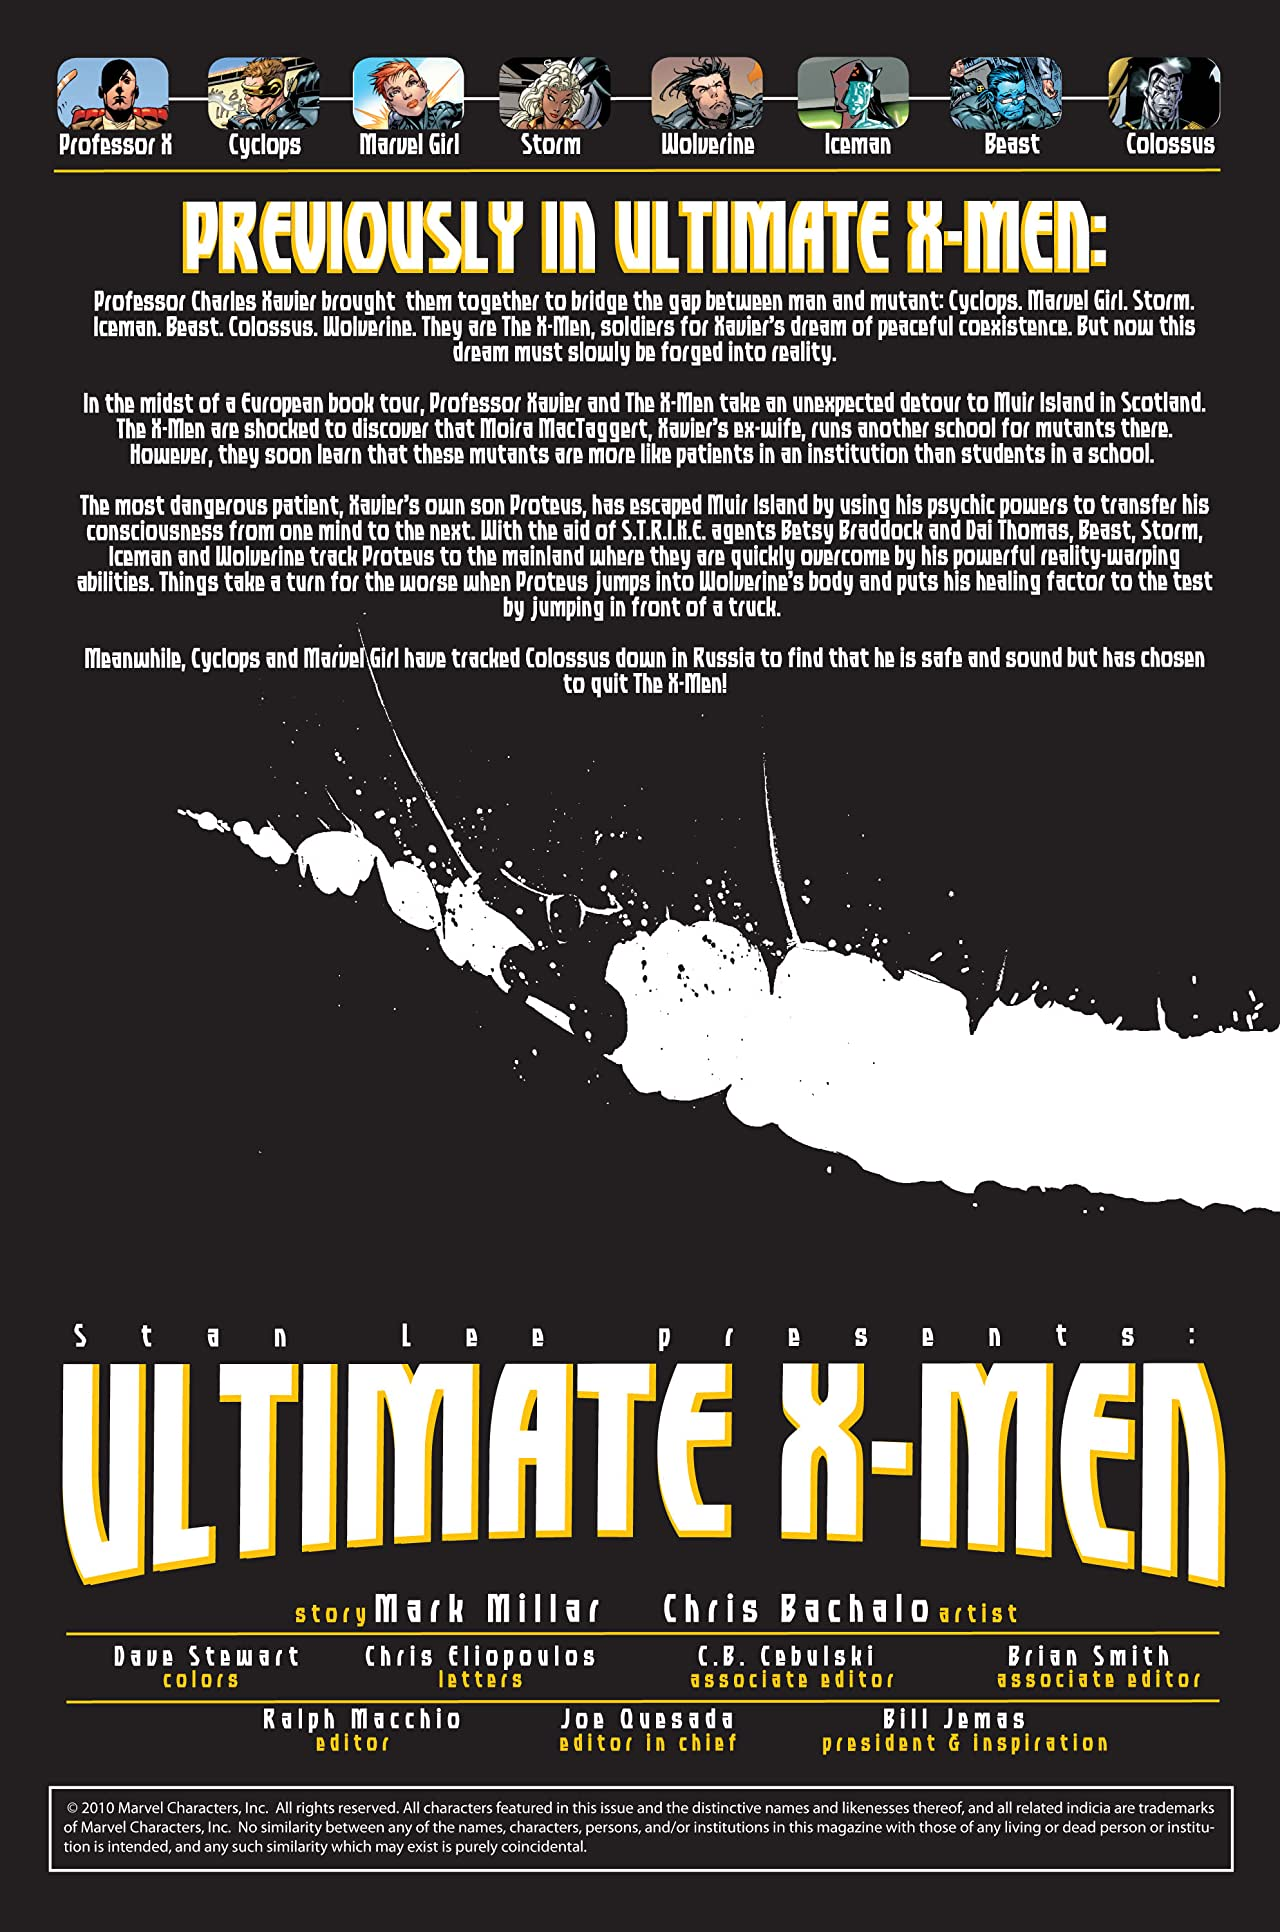 Ultimate X-Men #18